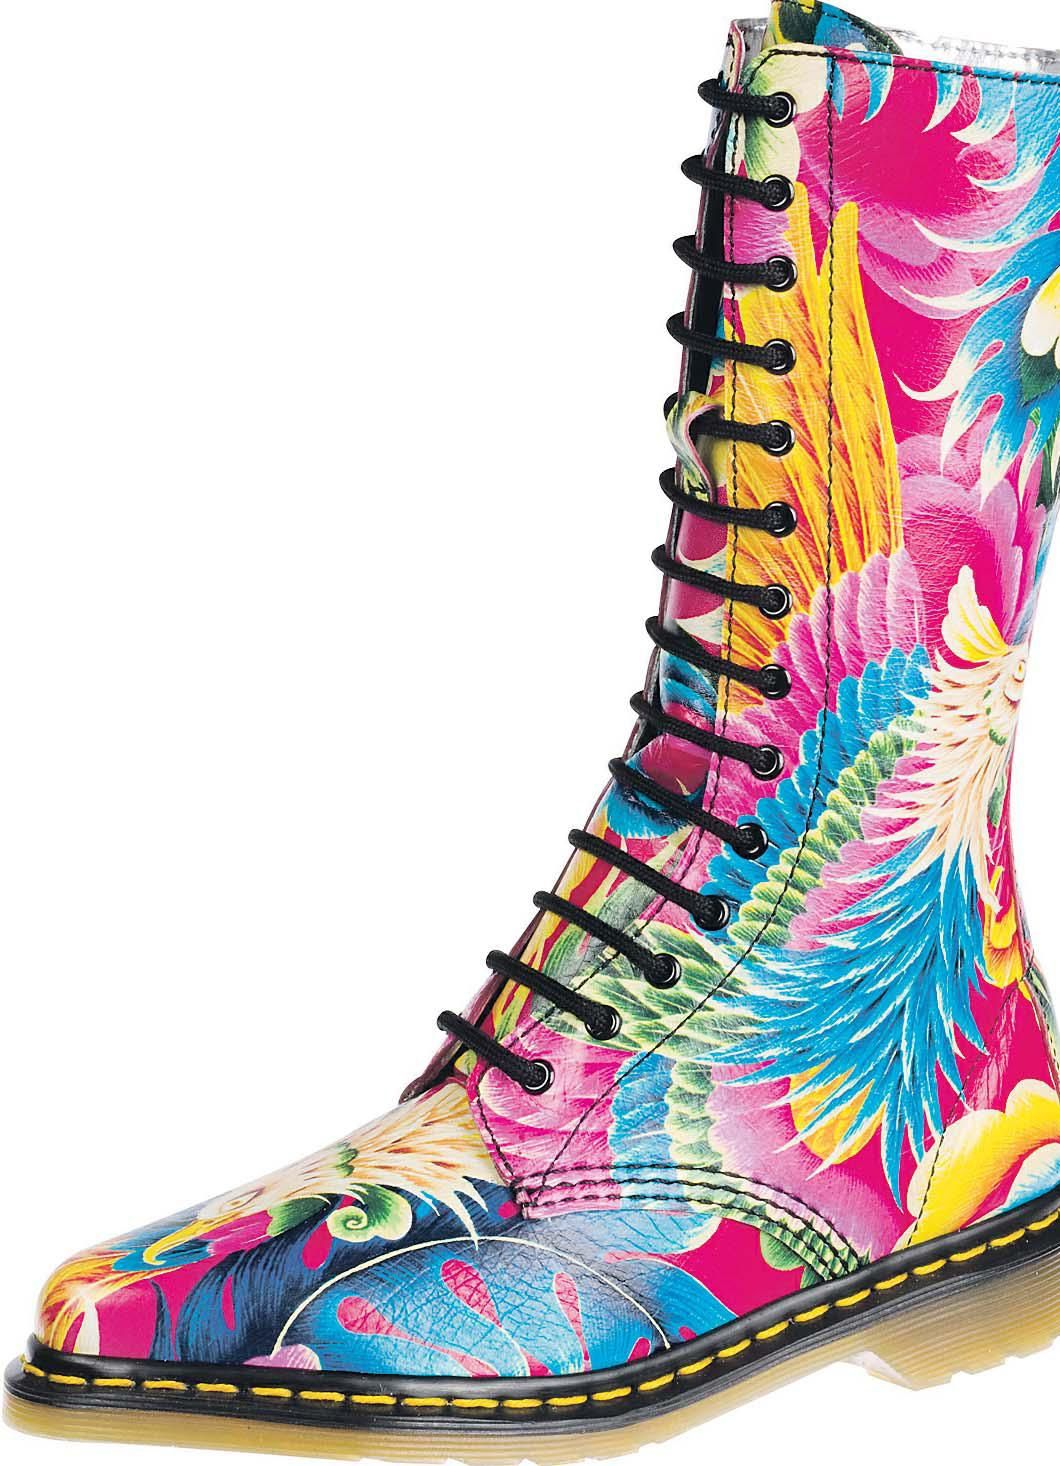 Welcome: Boots ~ Dr Martens (Colorful)   Doc martens boots